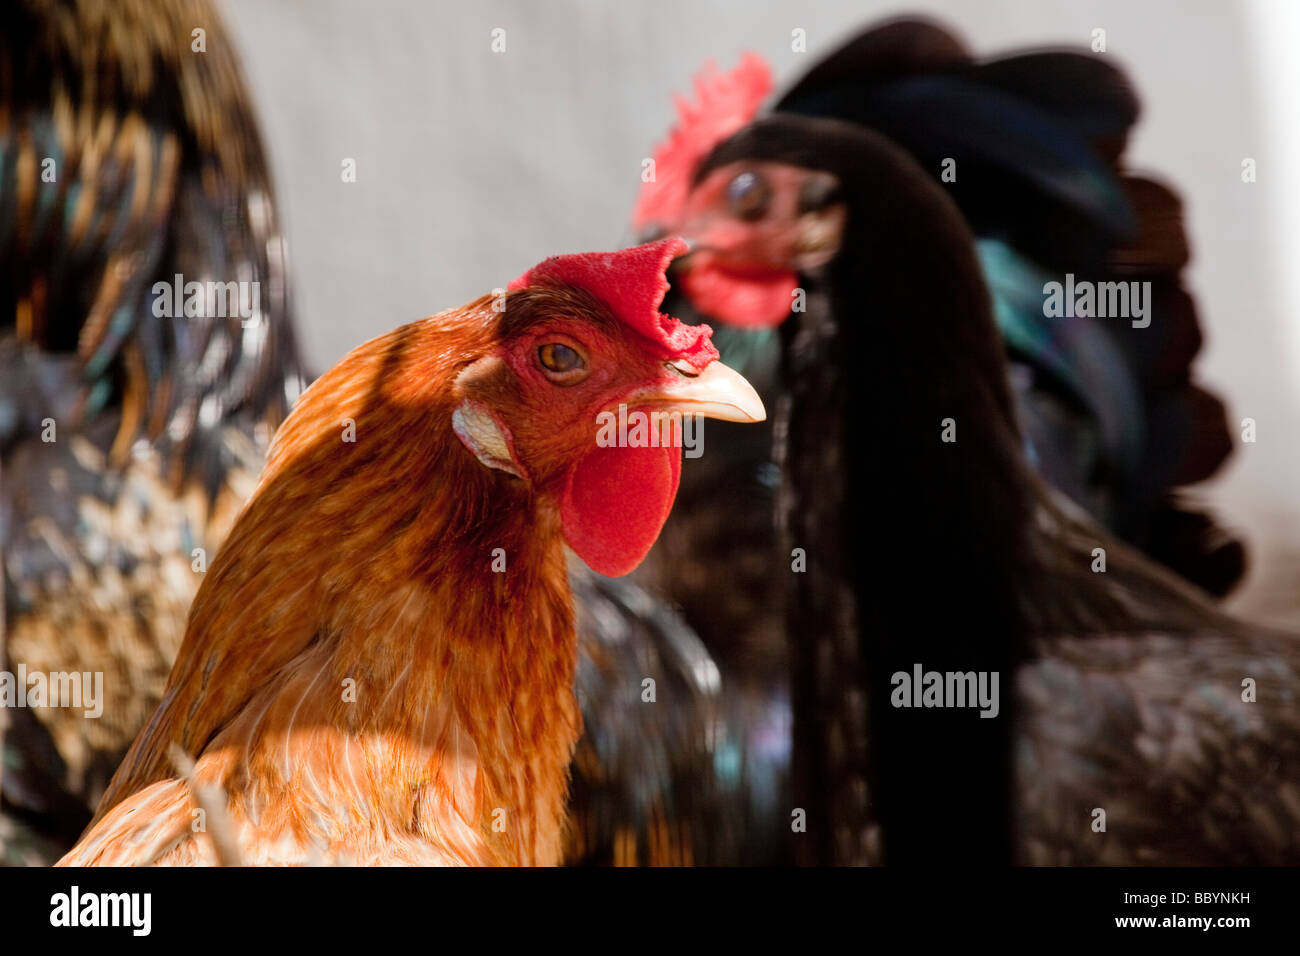 Gallinas de corral roosters poultry - Stock Image